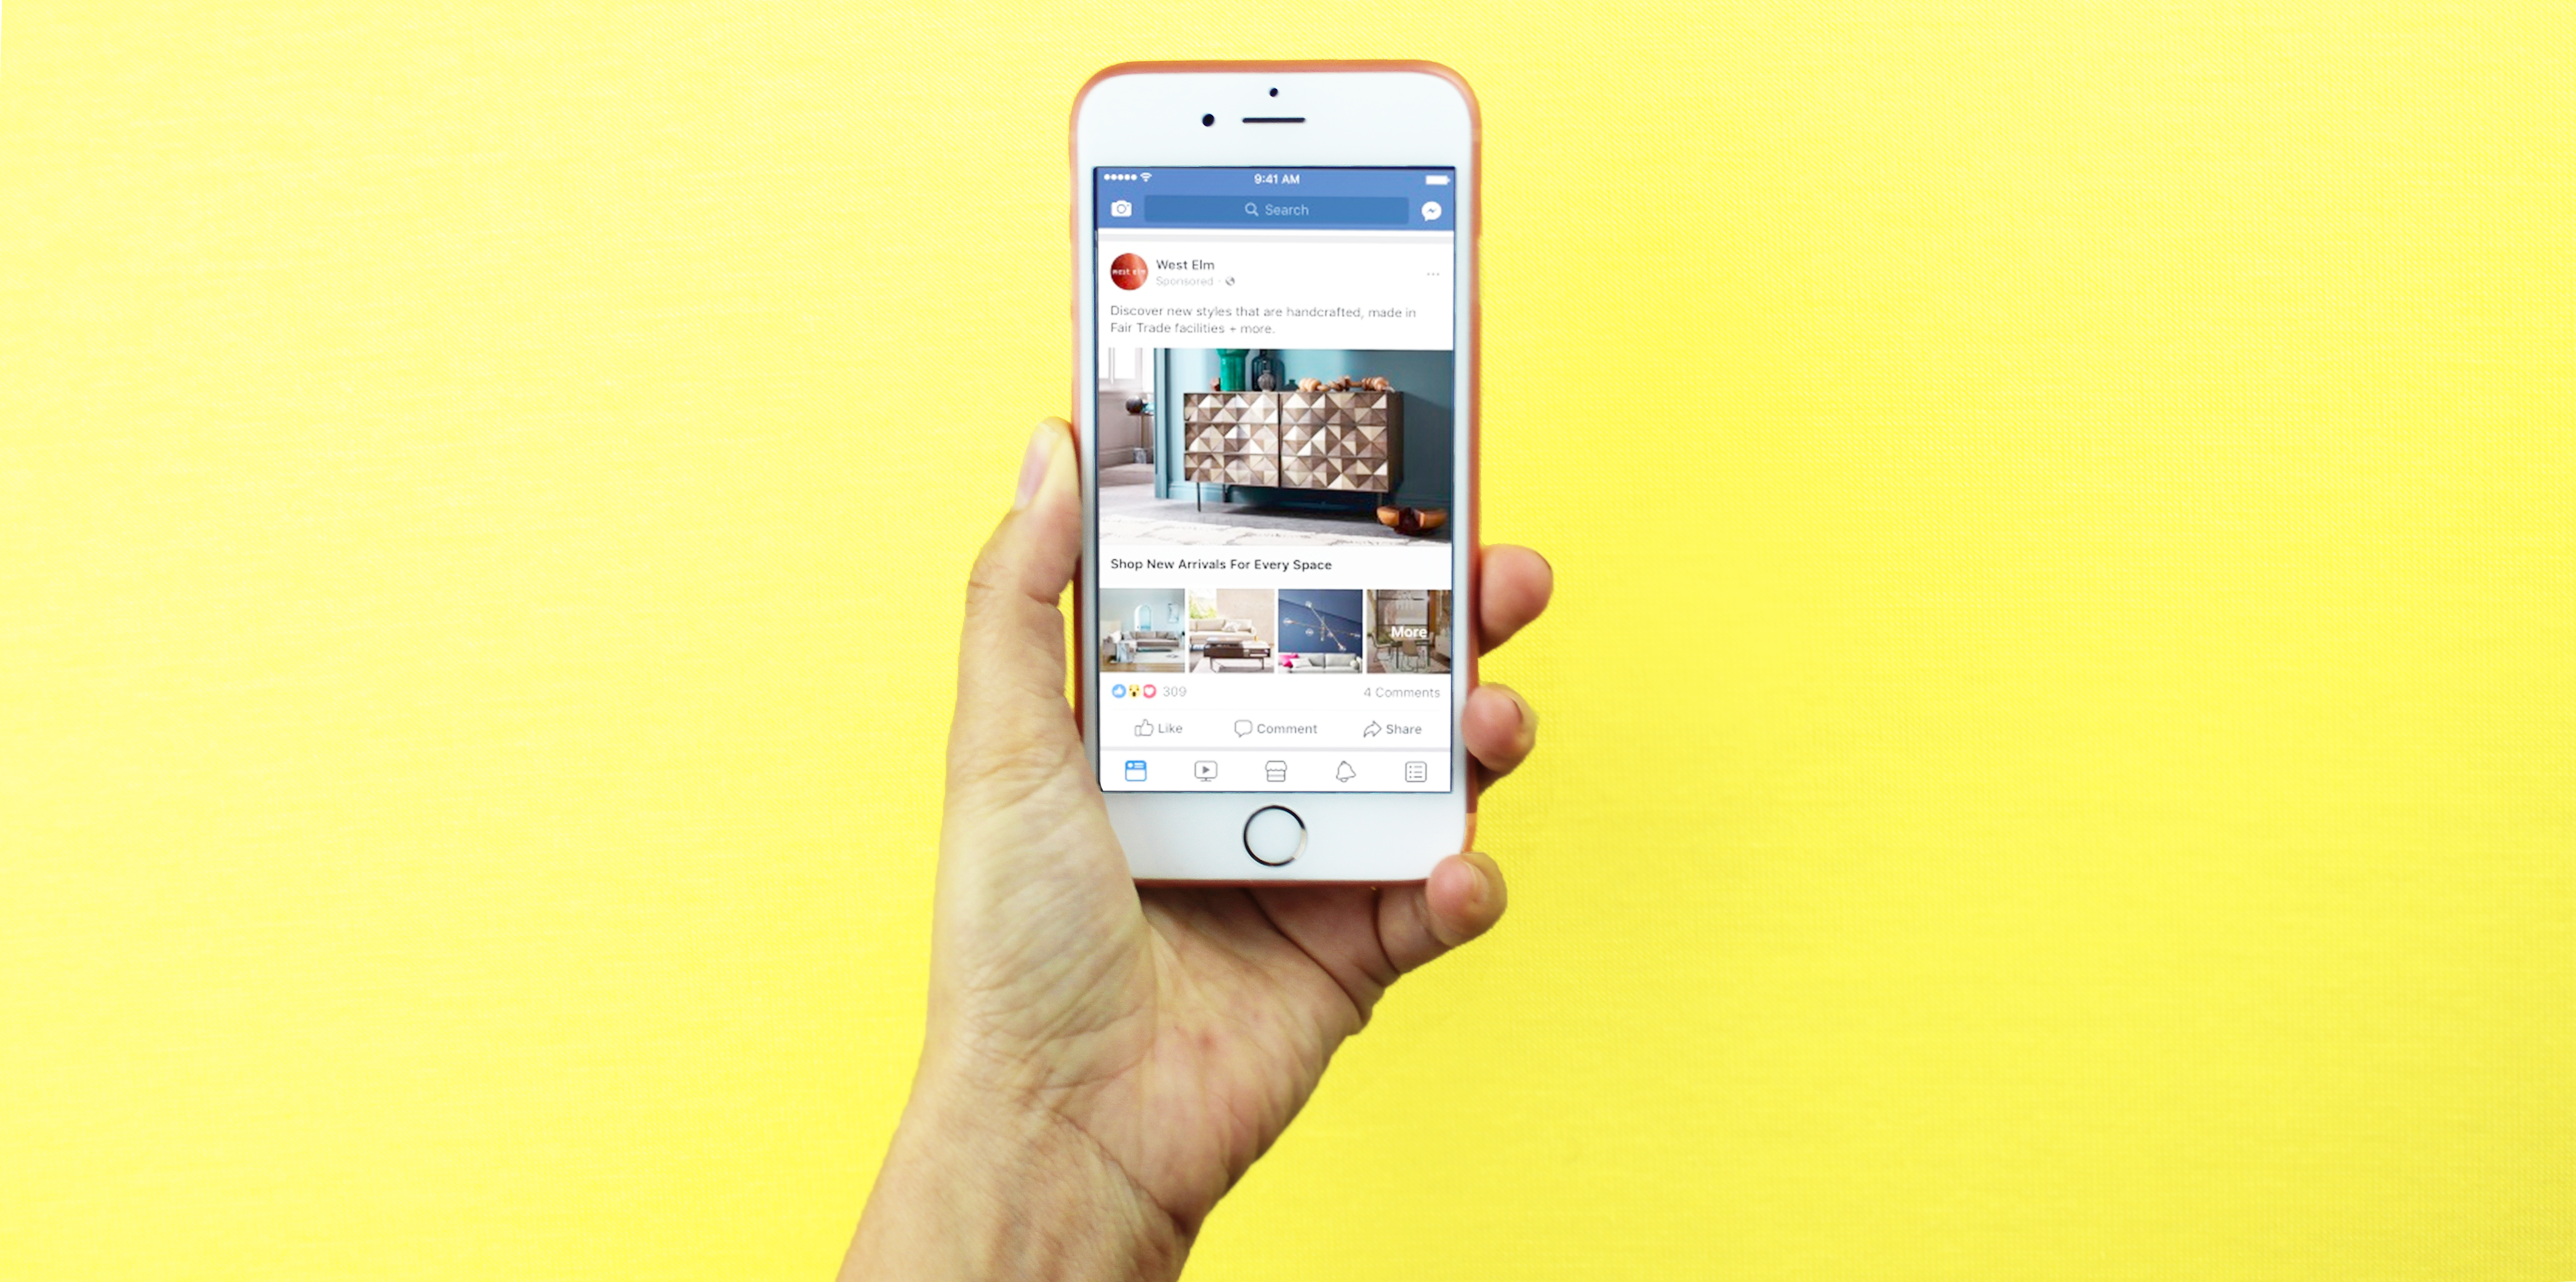 Want More Conversions? How to Design Better Social Media Ads